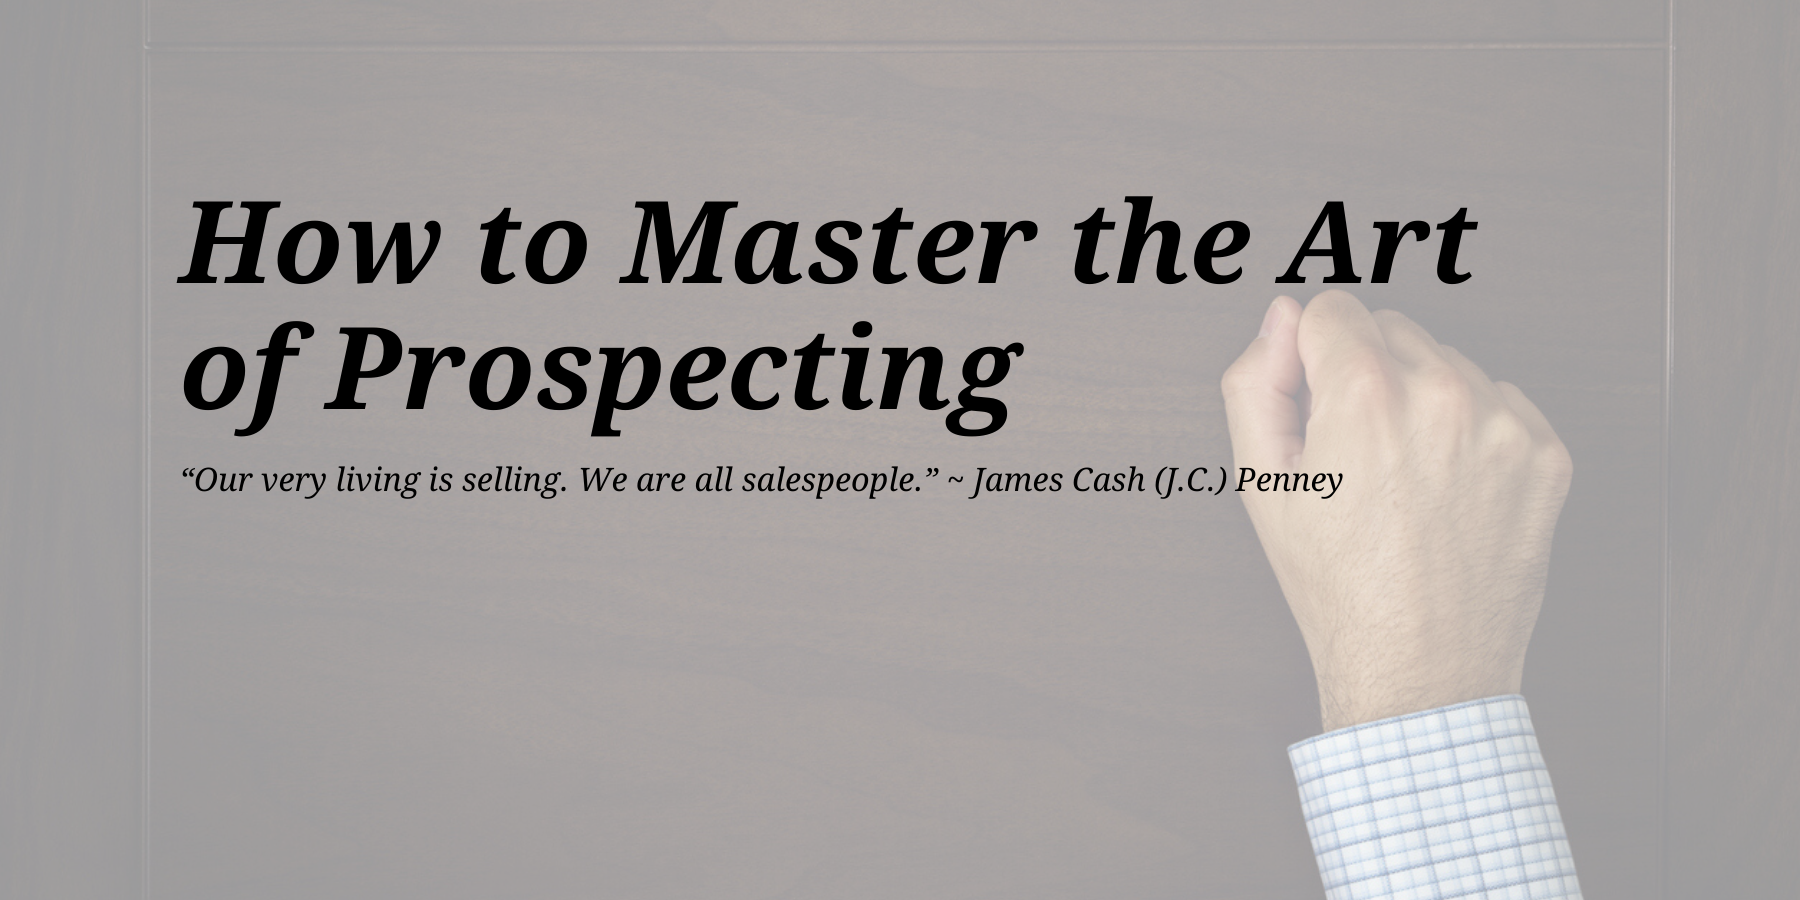 How To Master the Art of Prospecting